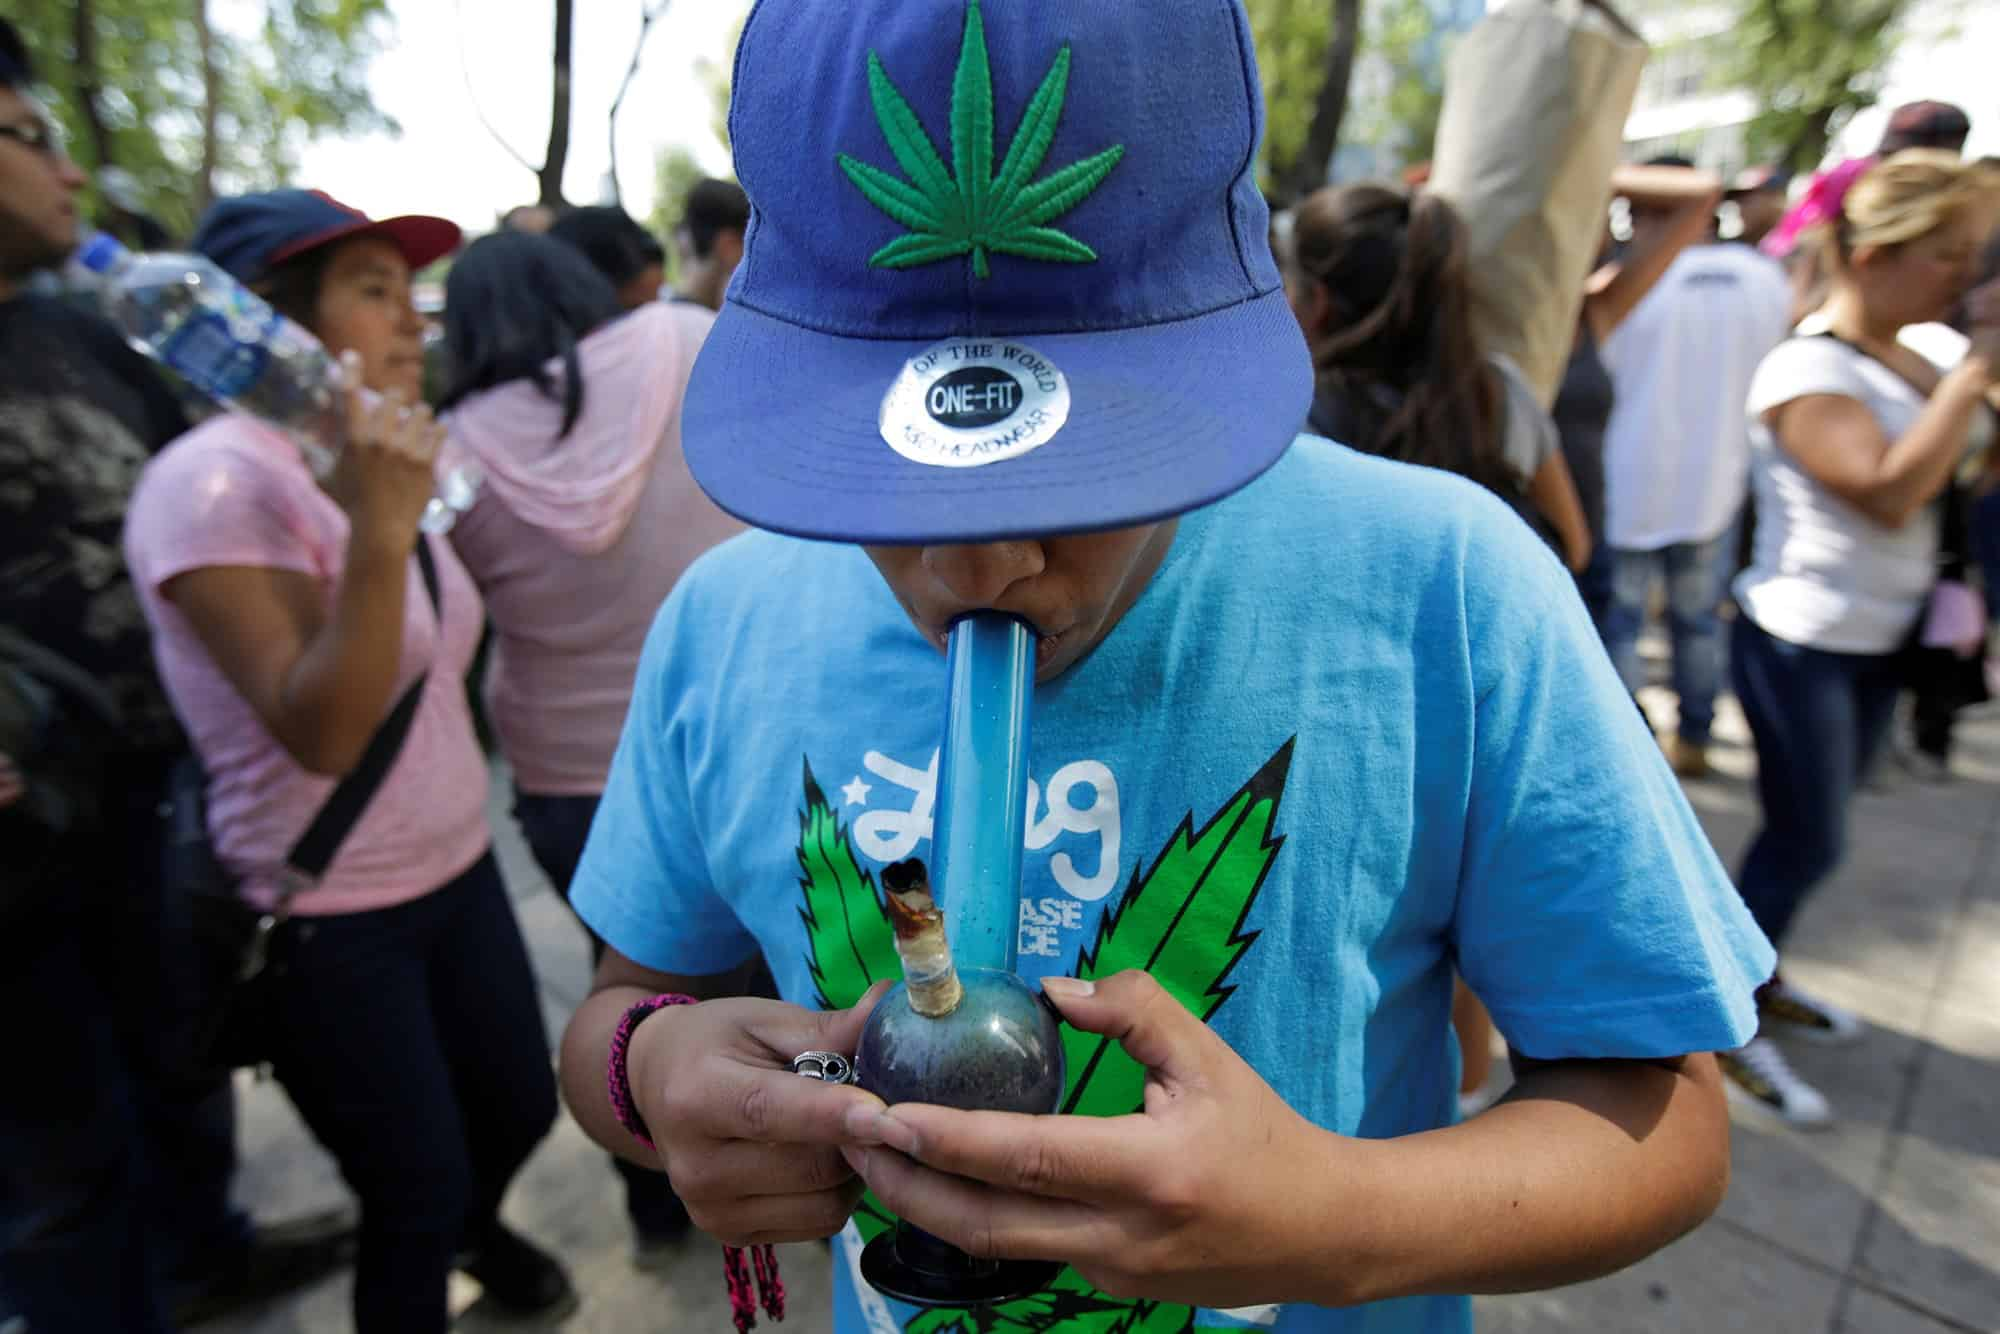 Marijuana worse for teen brains than alcohol, study finds